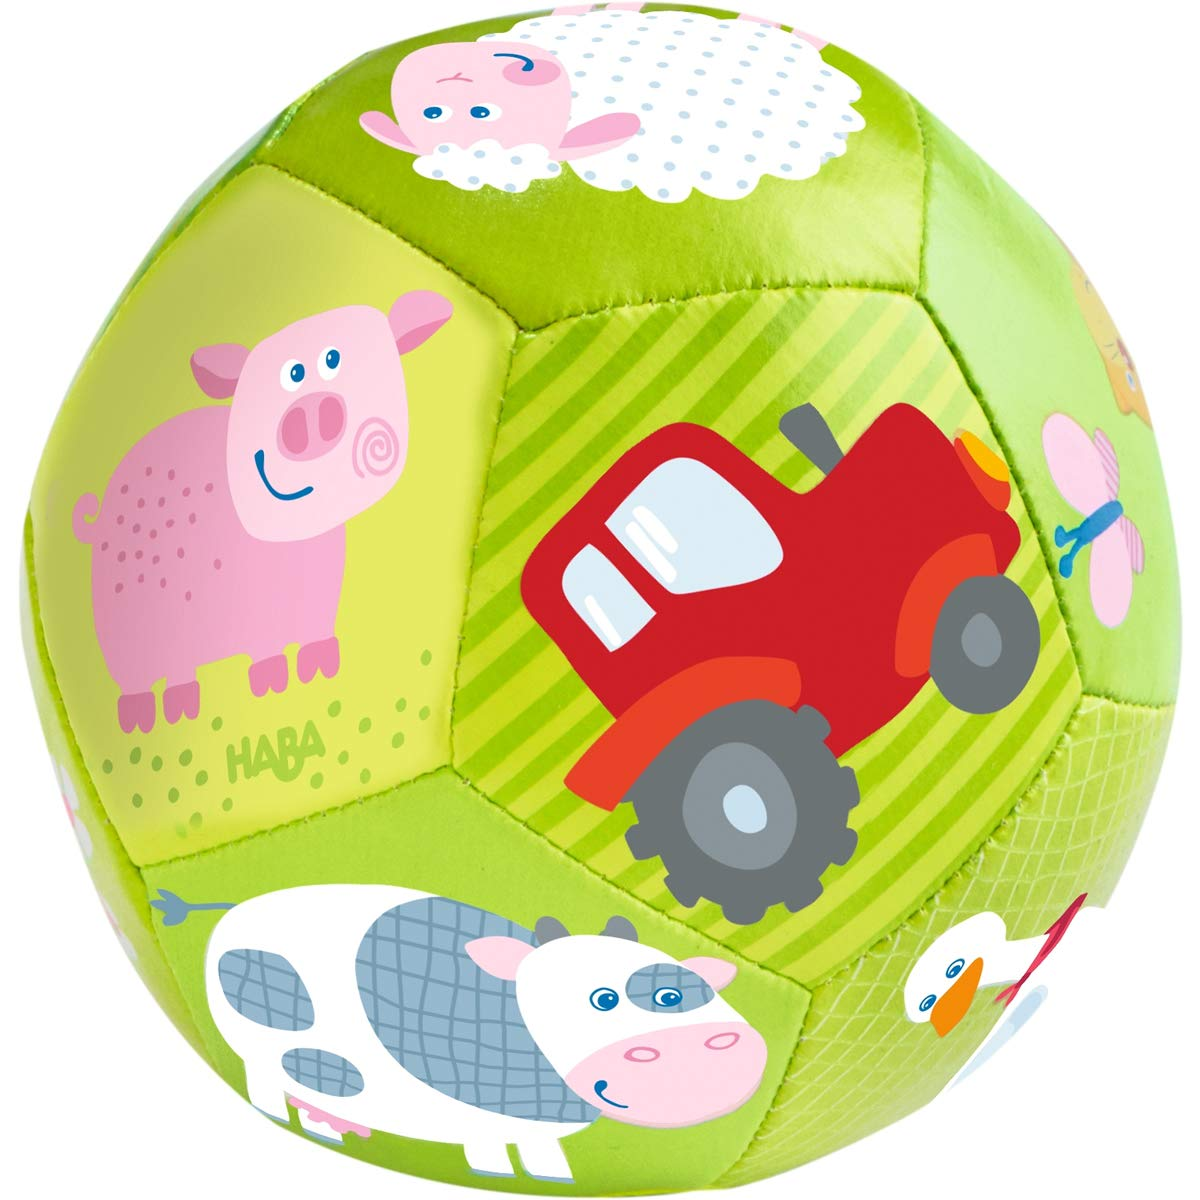 HABA Baby Ball on The Farm 4.5 for Babies 6 Months and Up SG/_B01L0WHRWK/_US